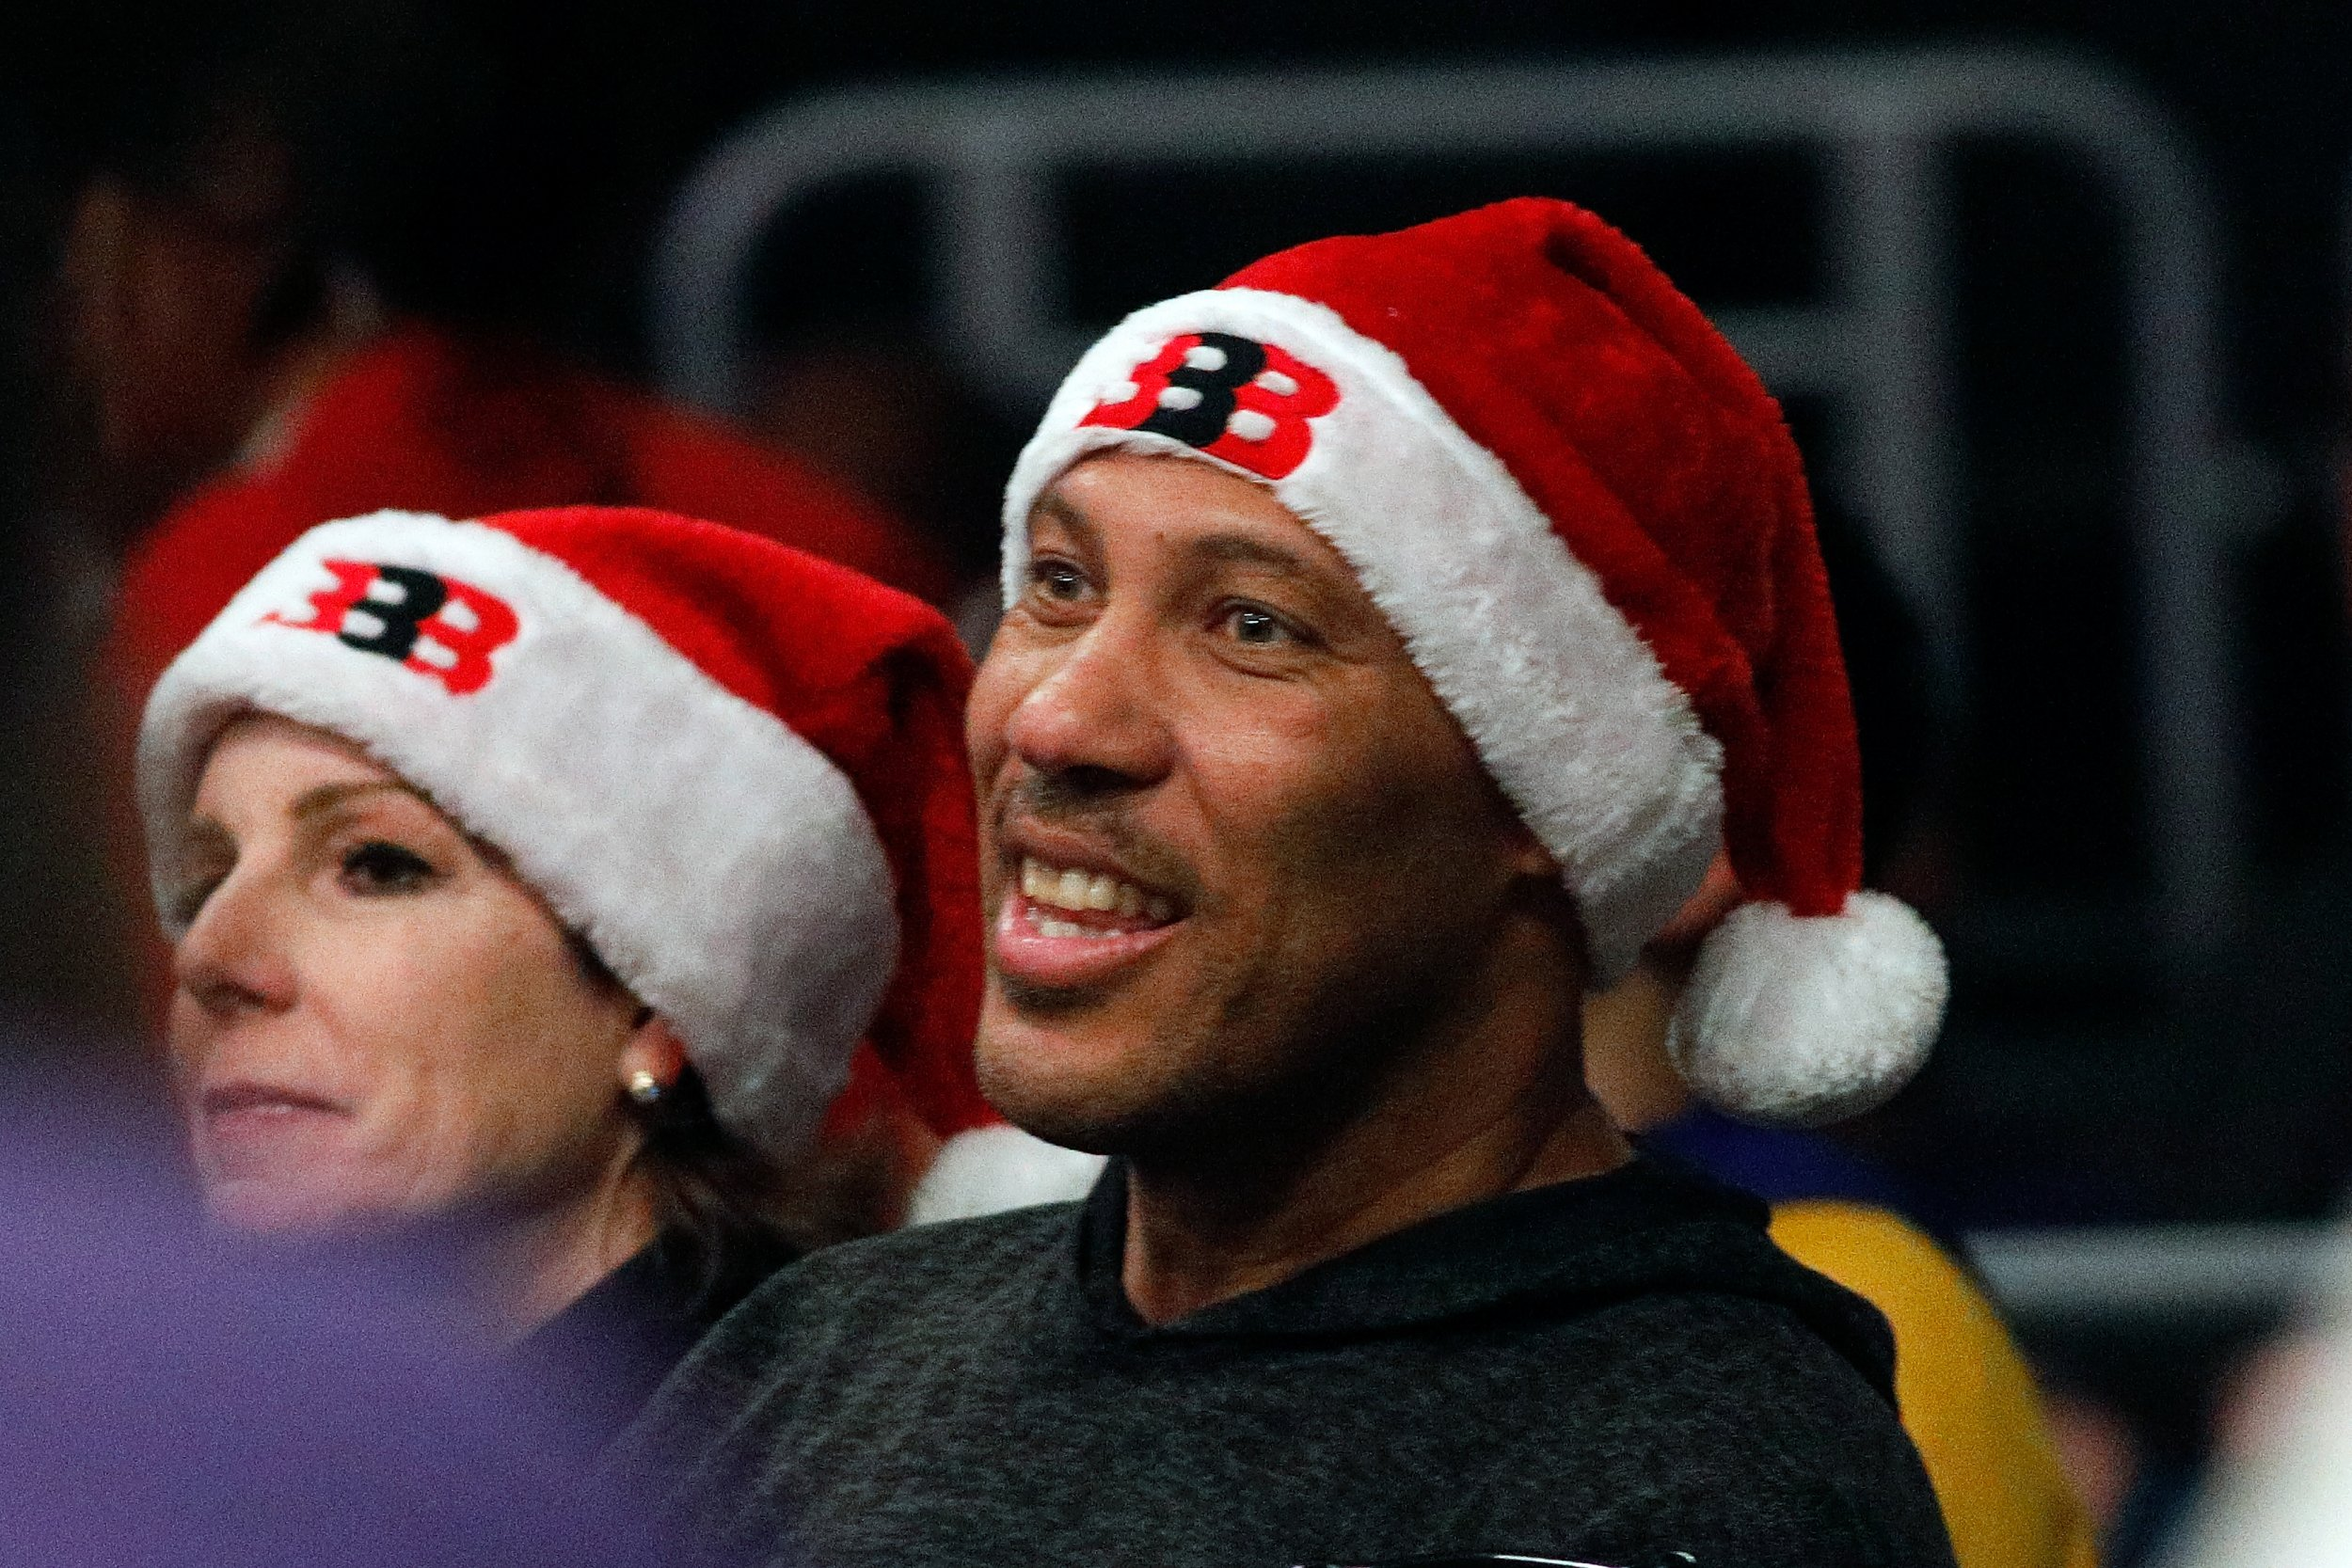 LaVar Ball, center, at Staples Center, Los Angeles.